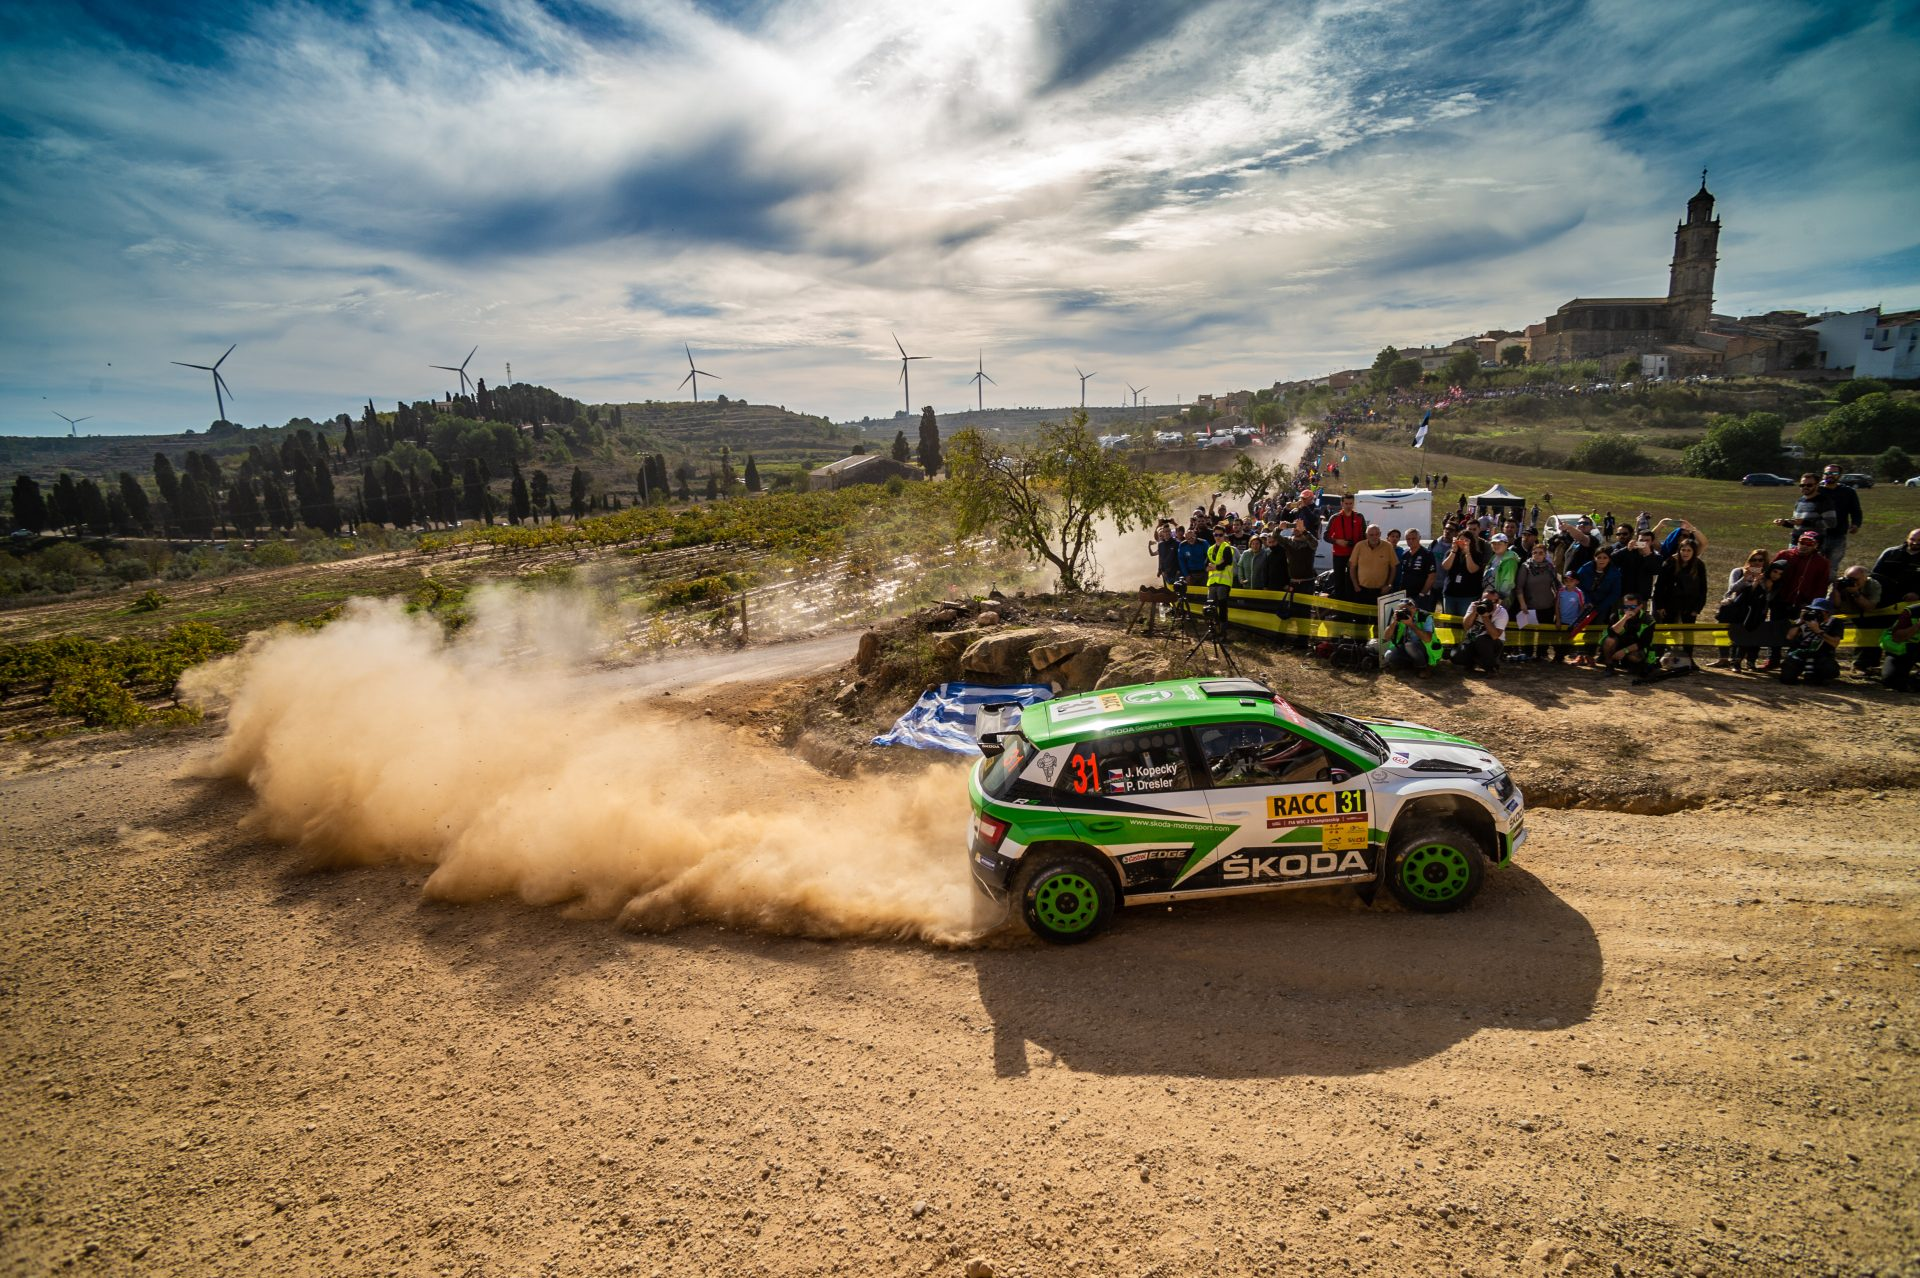 3 Things You Need to Know About Dust in Rallying | FABIA R5: The Dust Monster